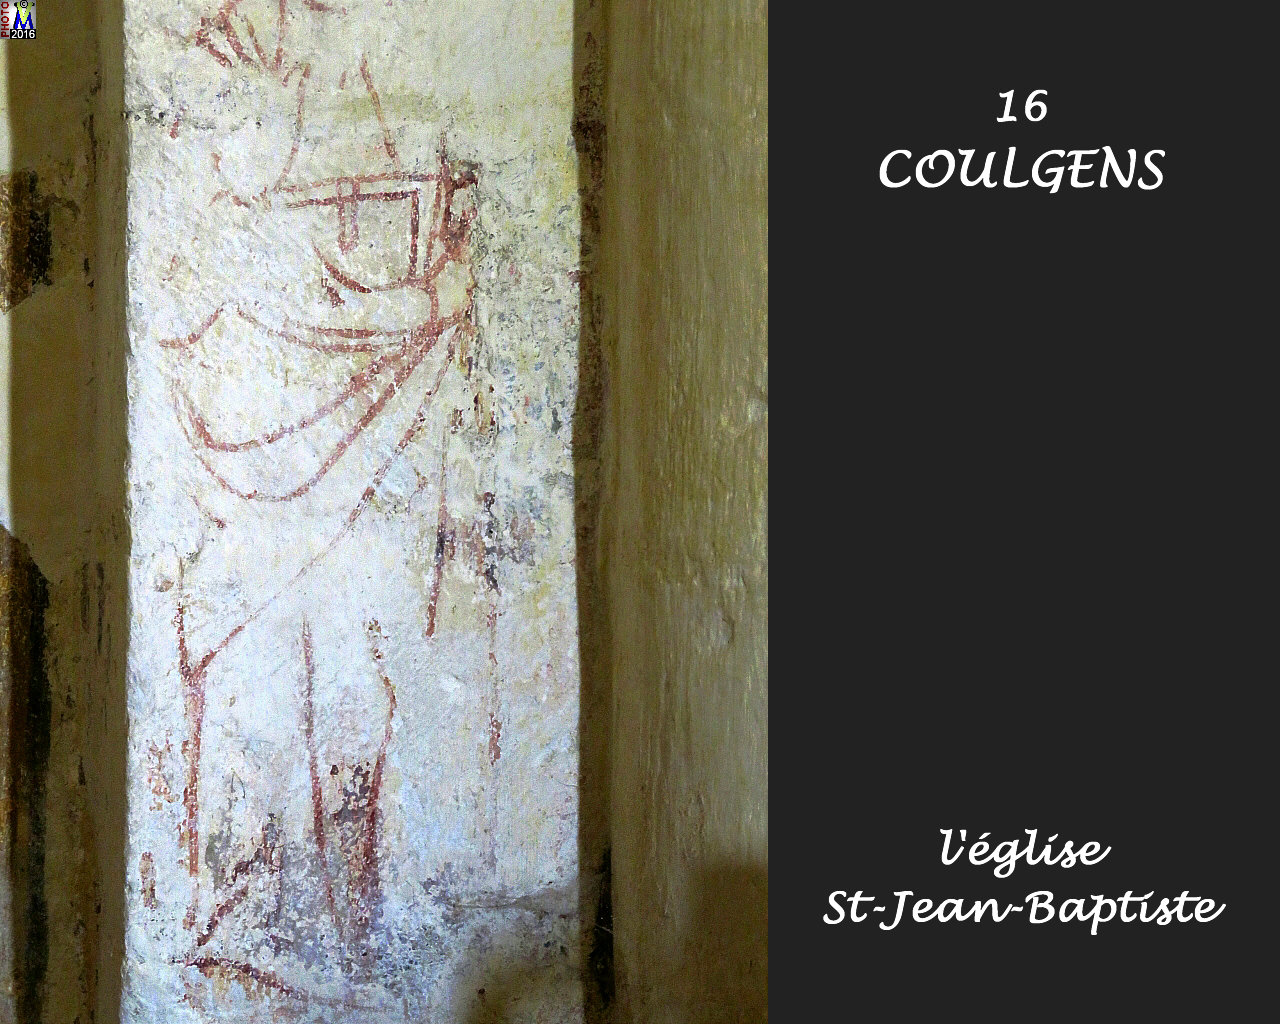 16COULGENS_eglise_1118.jpg